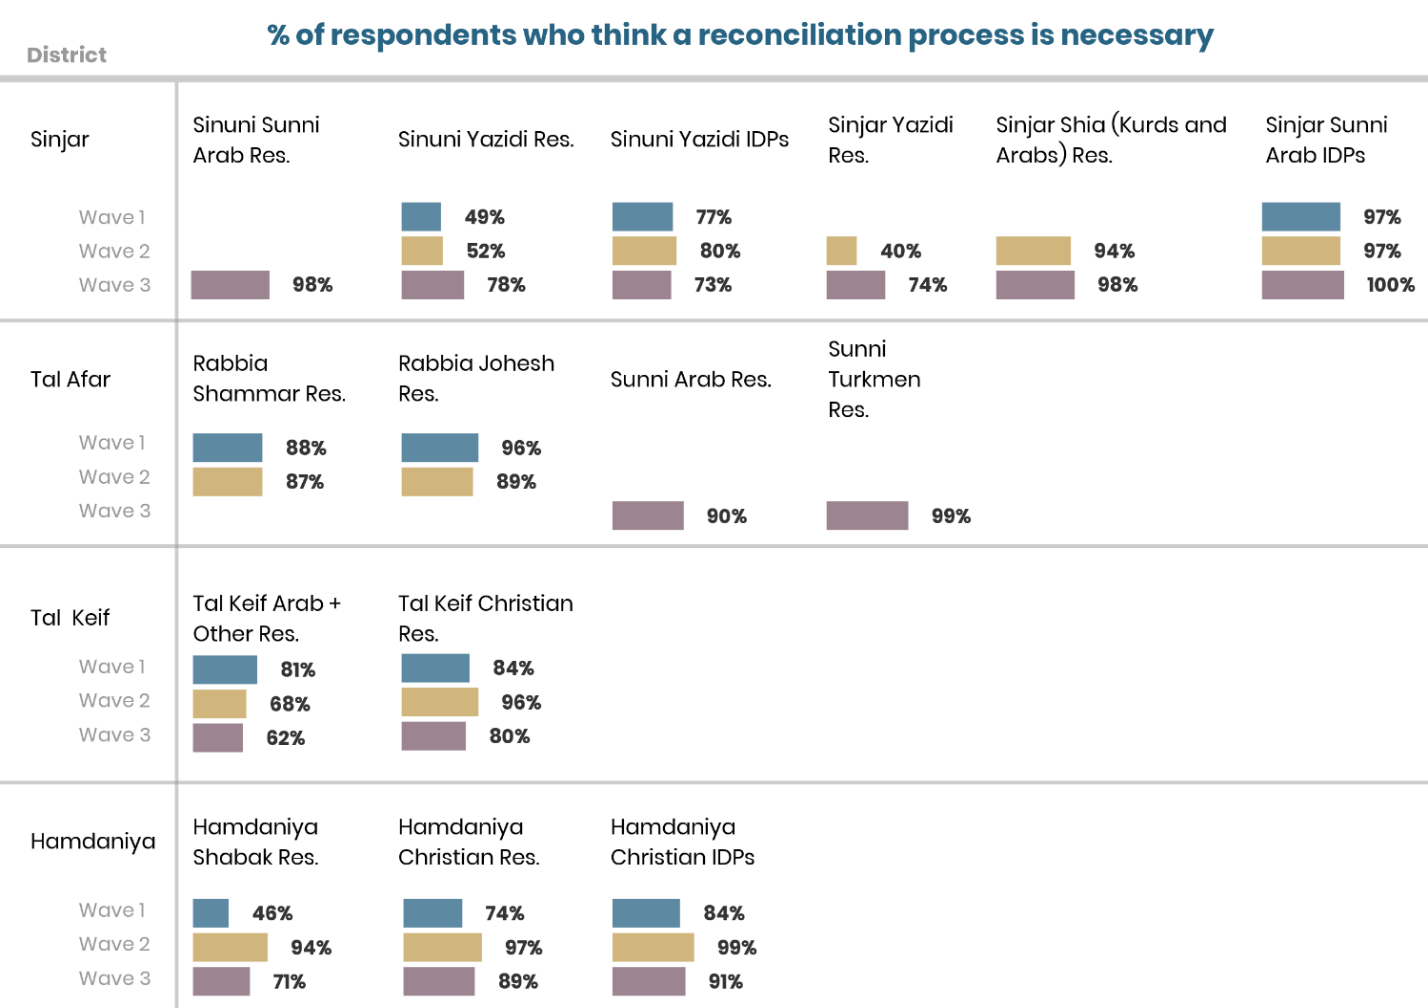 CSMF data demonstrates that reconciliation is needed